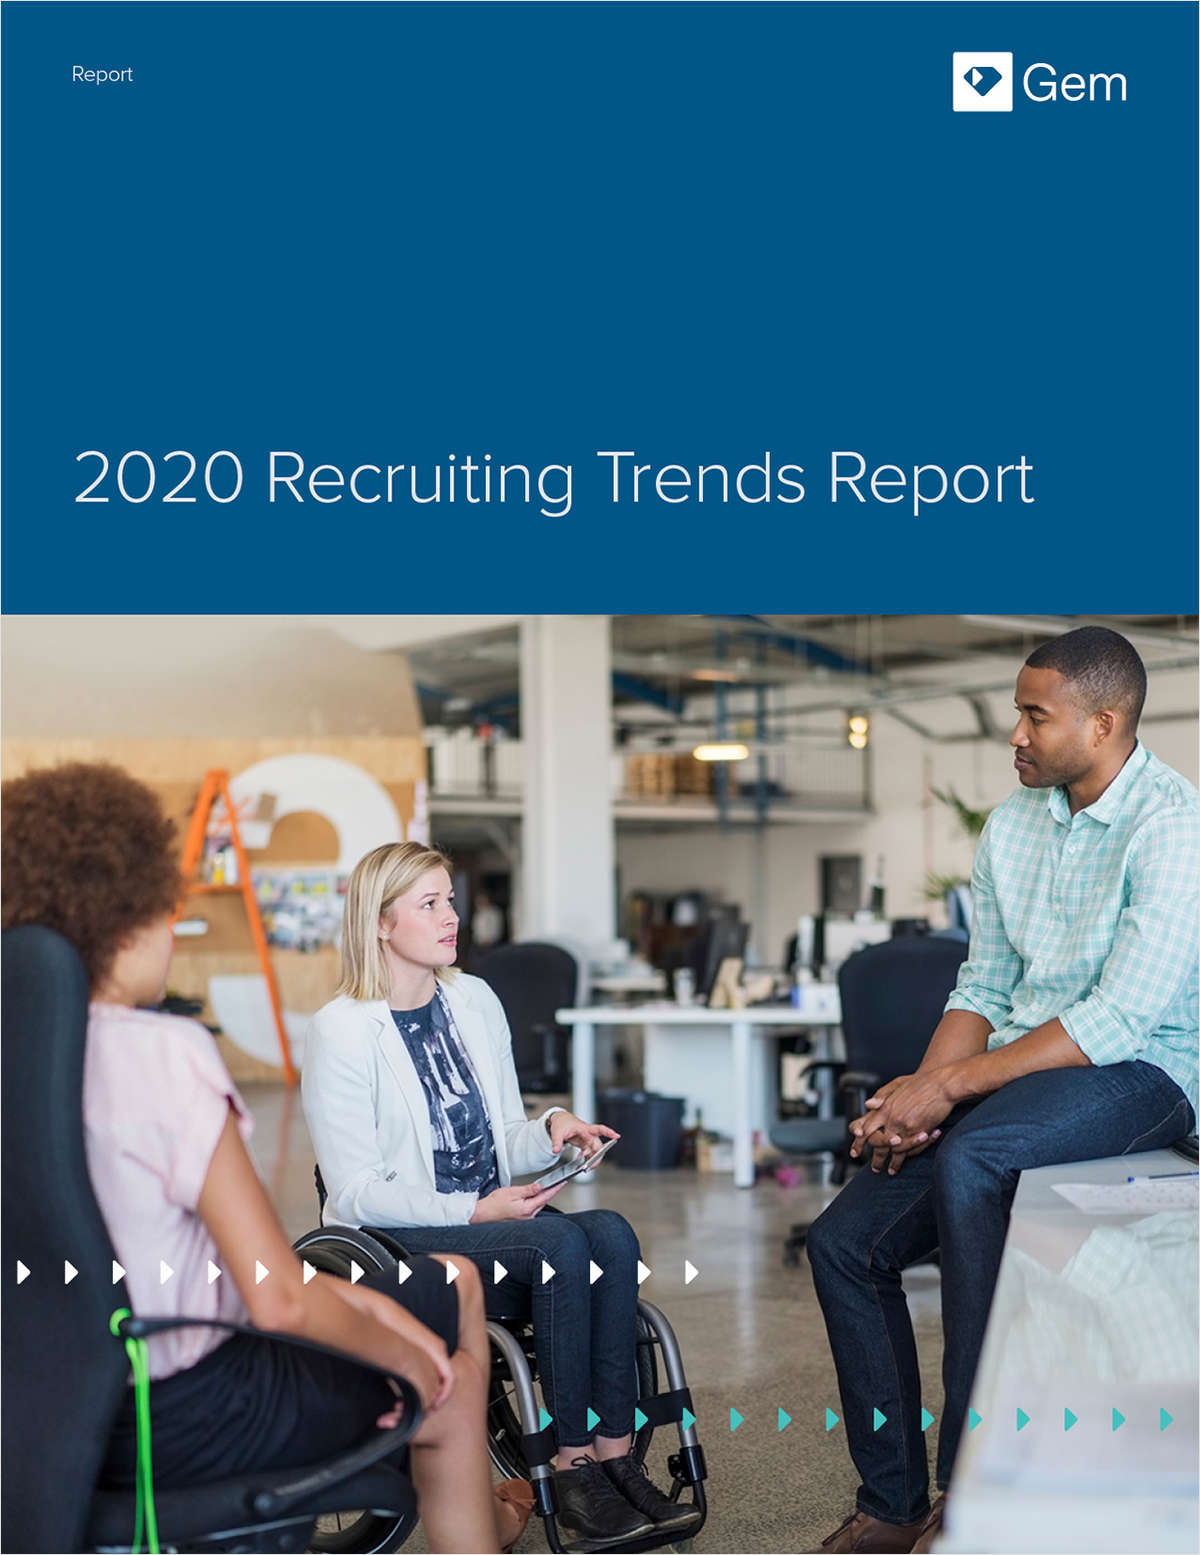 Keeping Up With 2020: A Trend Report for Talent Acquisition